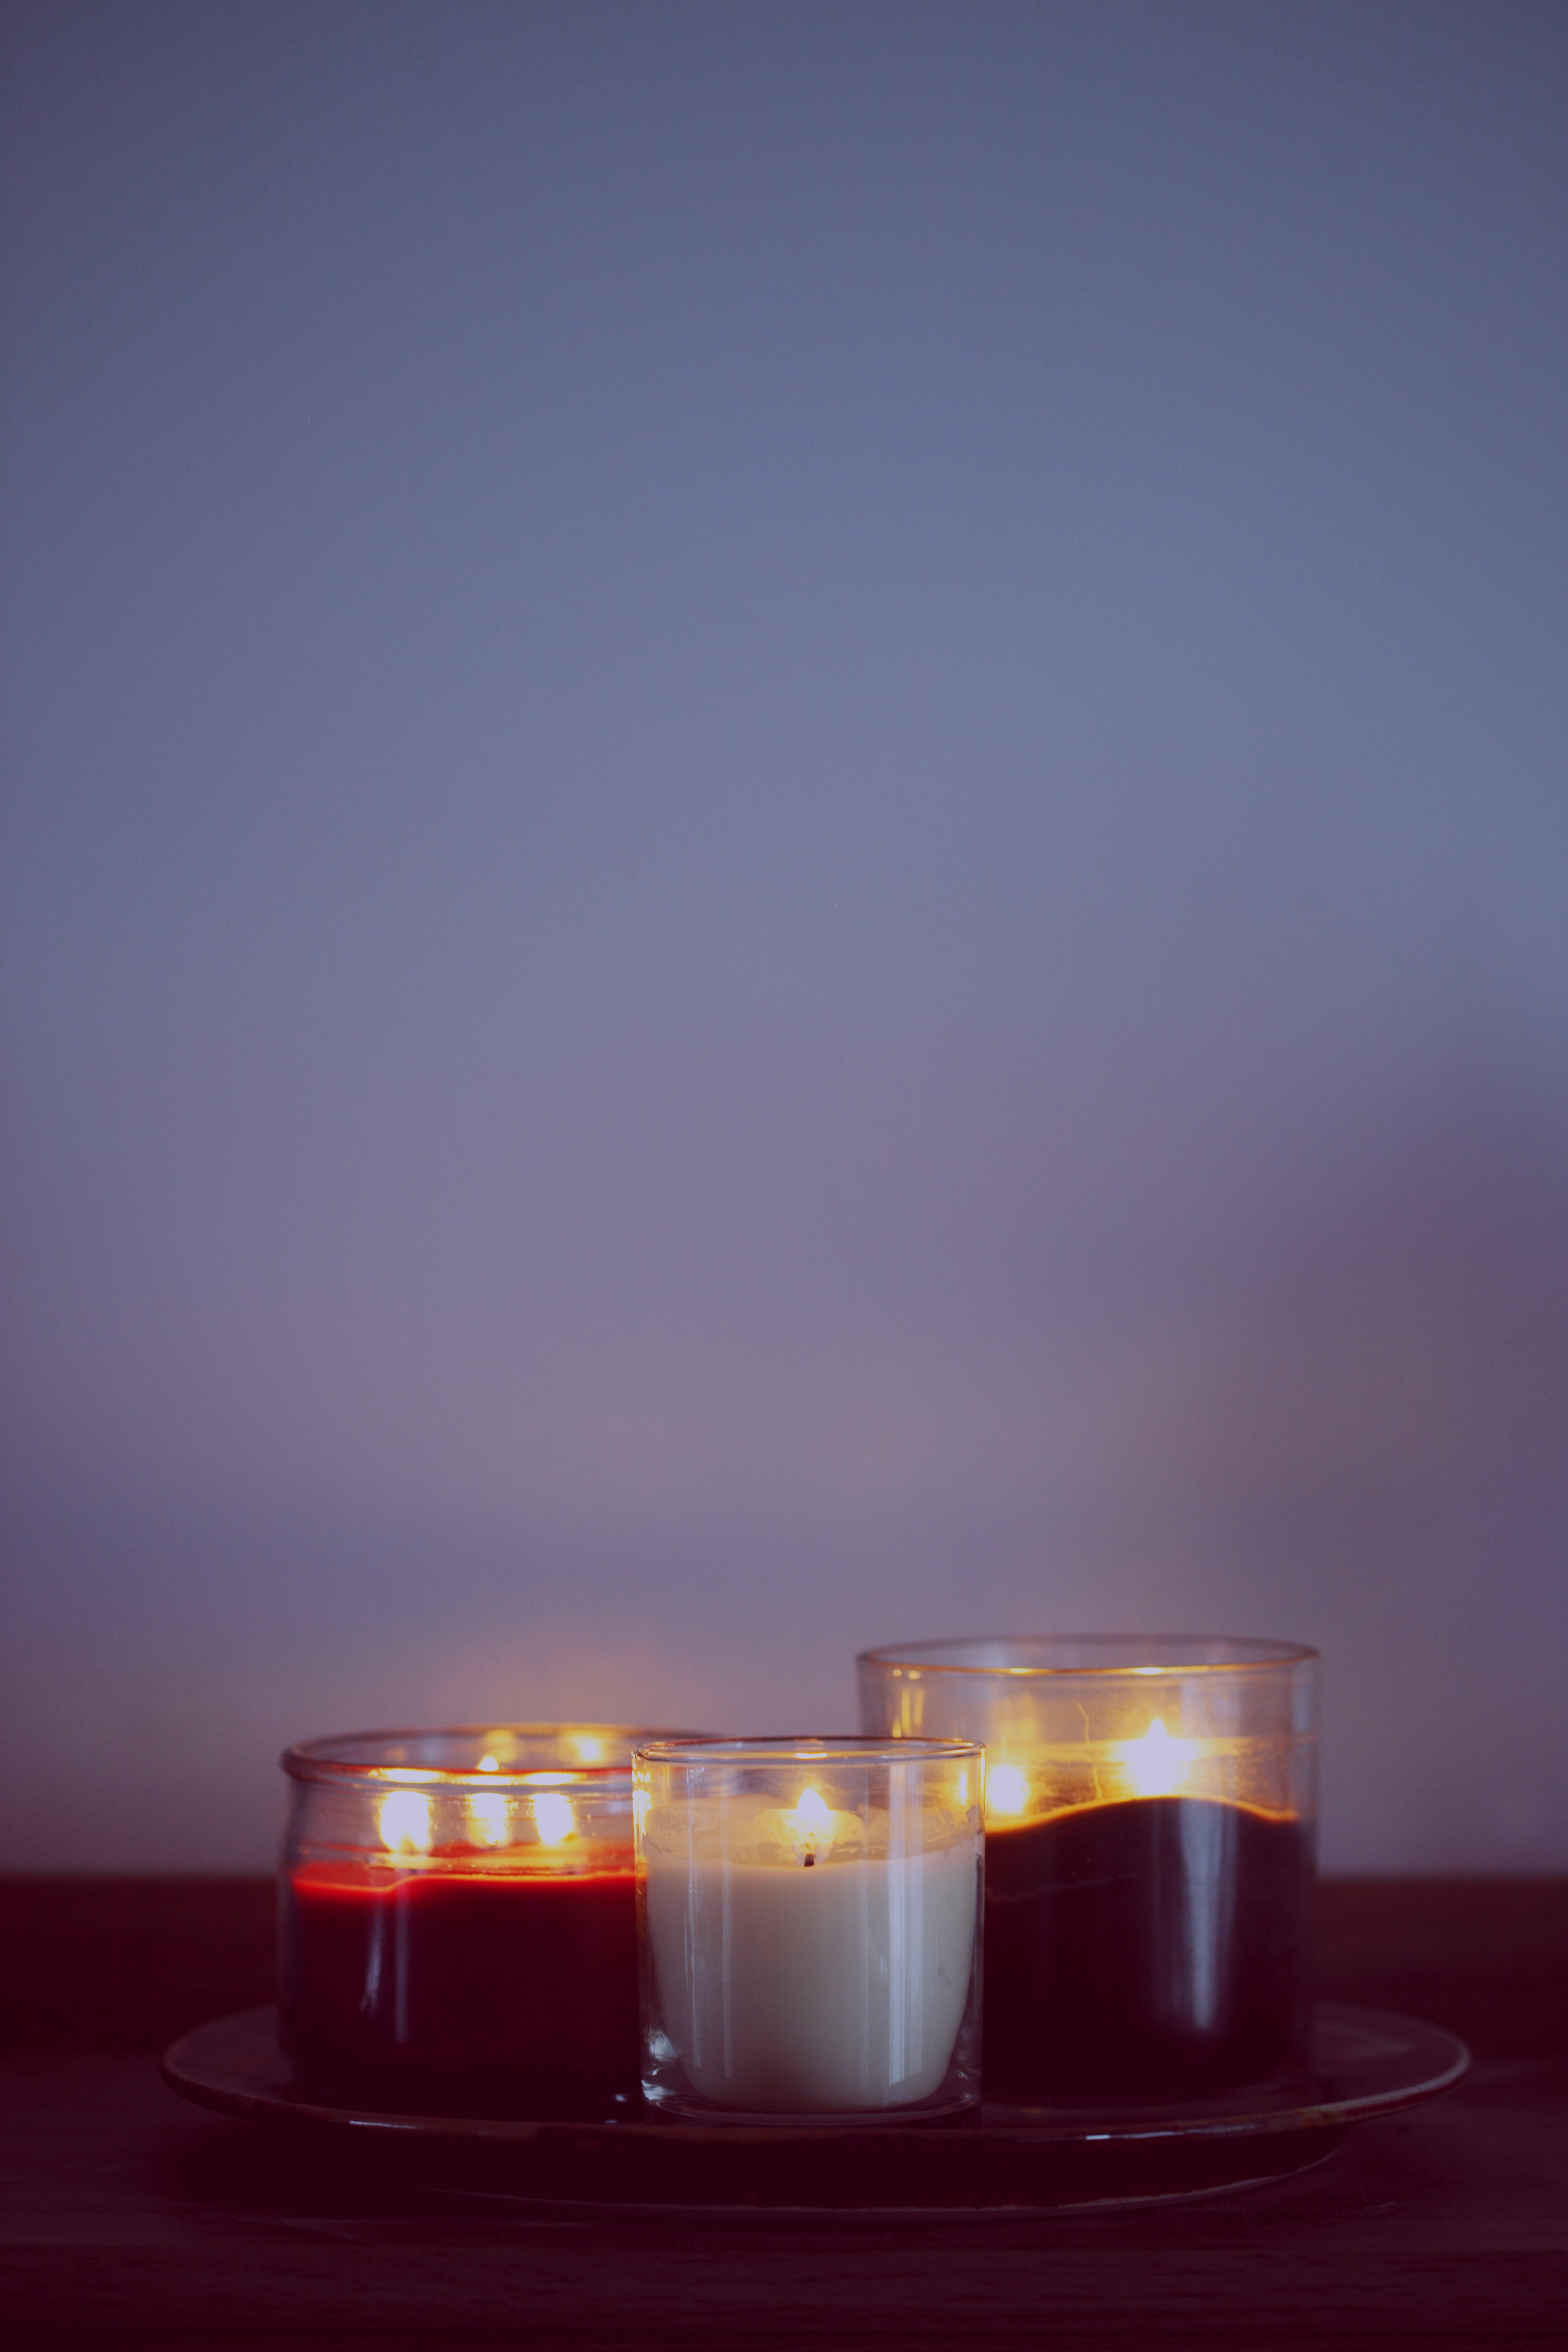 114725 Screensavers and Wallpapers Candles for phone. Download Candles, Miscellanea, Miscellaneous, Table, Wick, Wax pictures for free